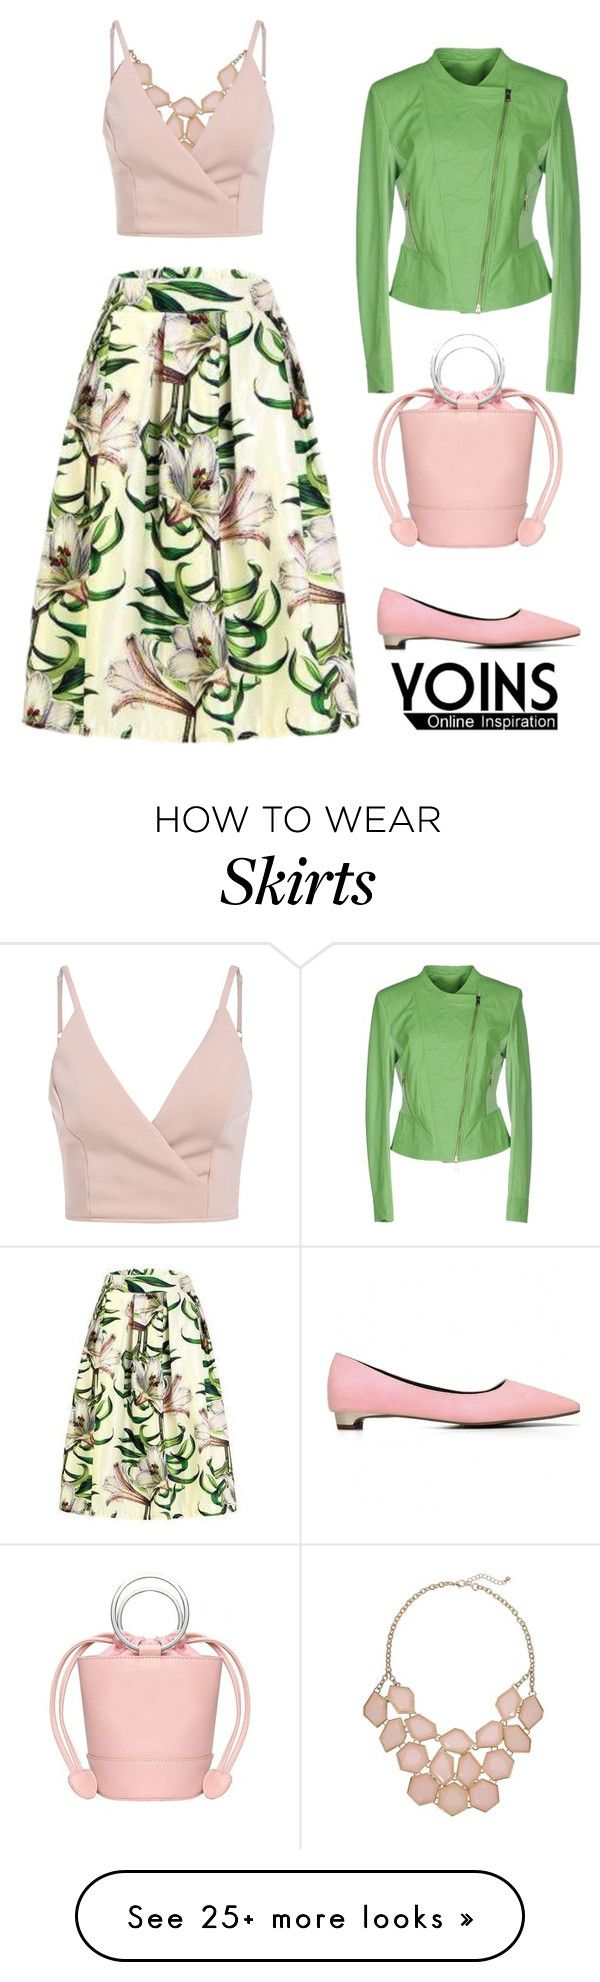 """floral skirt"" by chiarettadesign on Polyvore featuring KI6? Who Are You?"